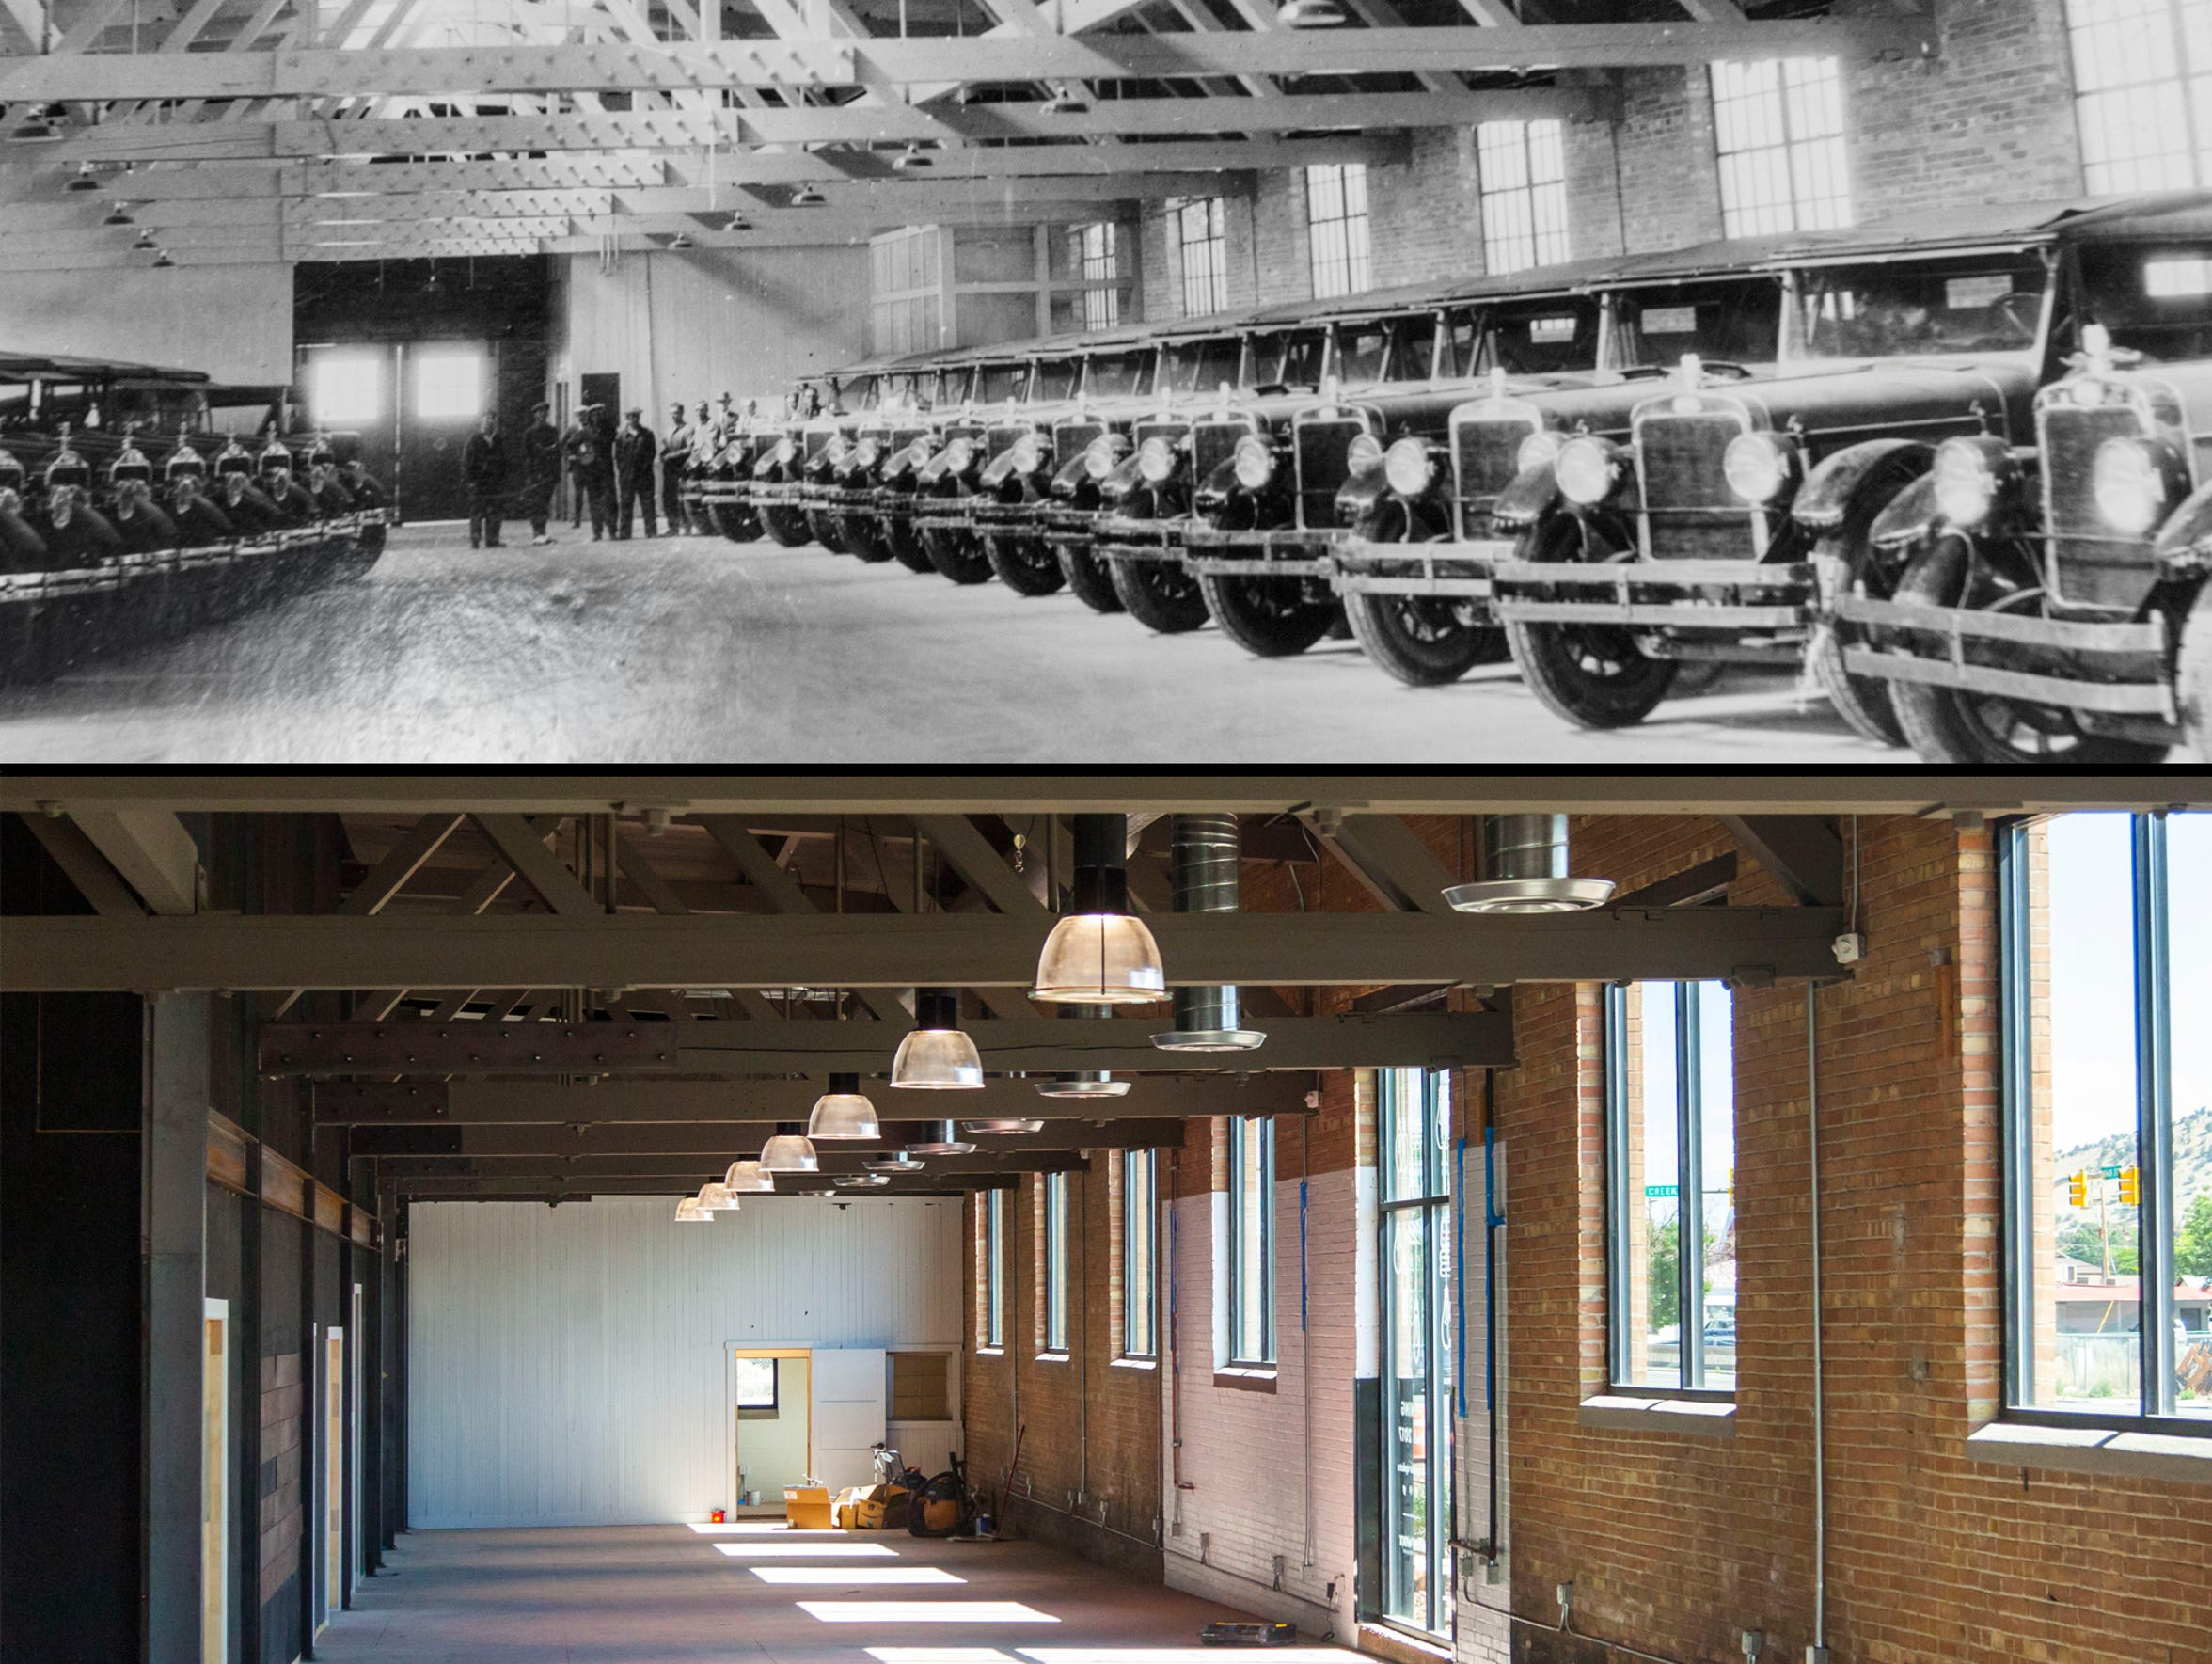 A historical and modern view of the building at 451